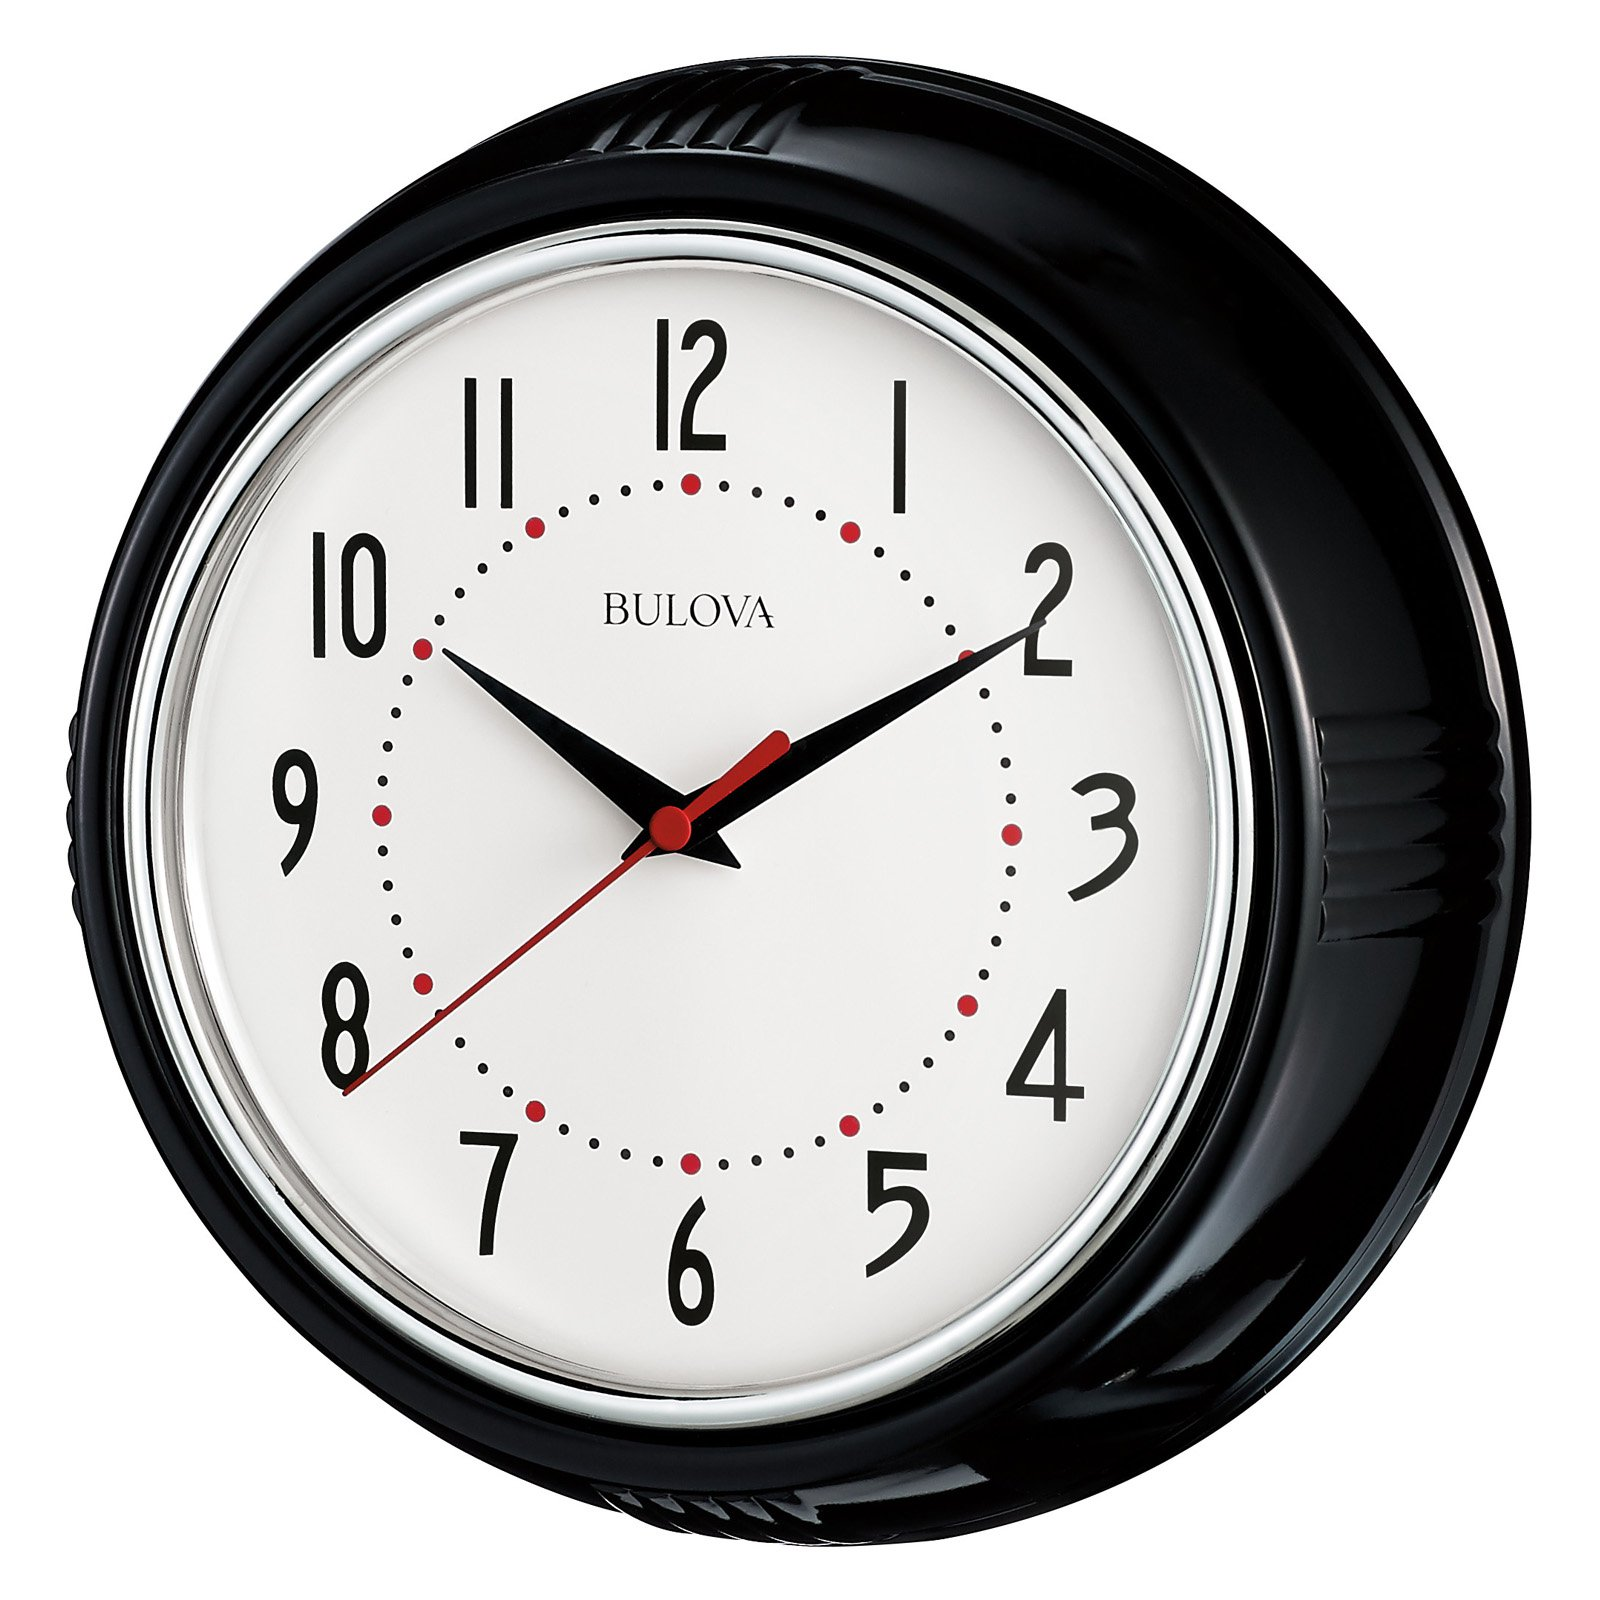 Groovy Bulova 9 75 Diam Kitchen Plus Wall Clock Home Interior And Landscaping Synyenasavecom